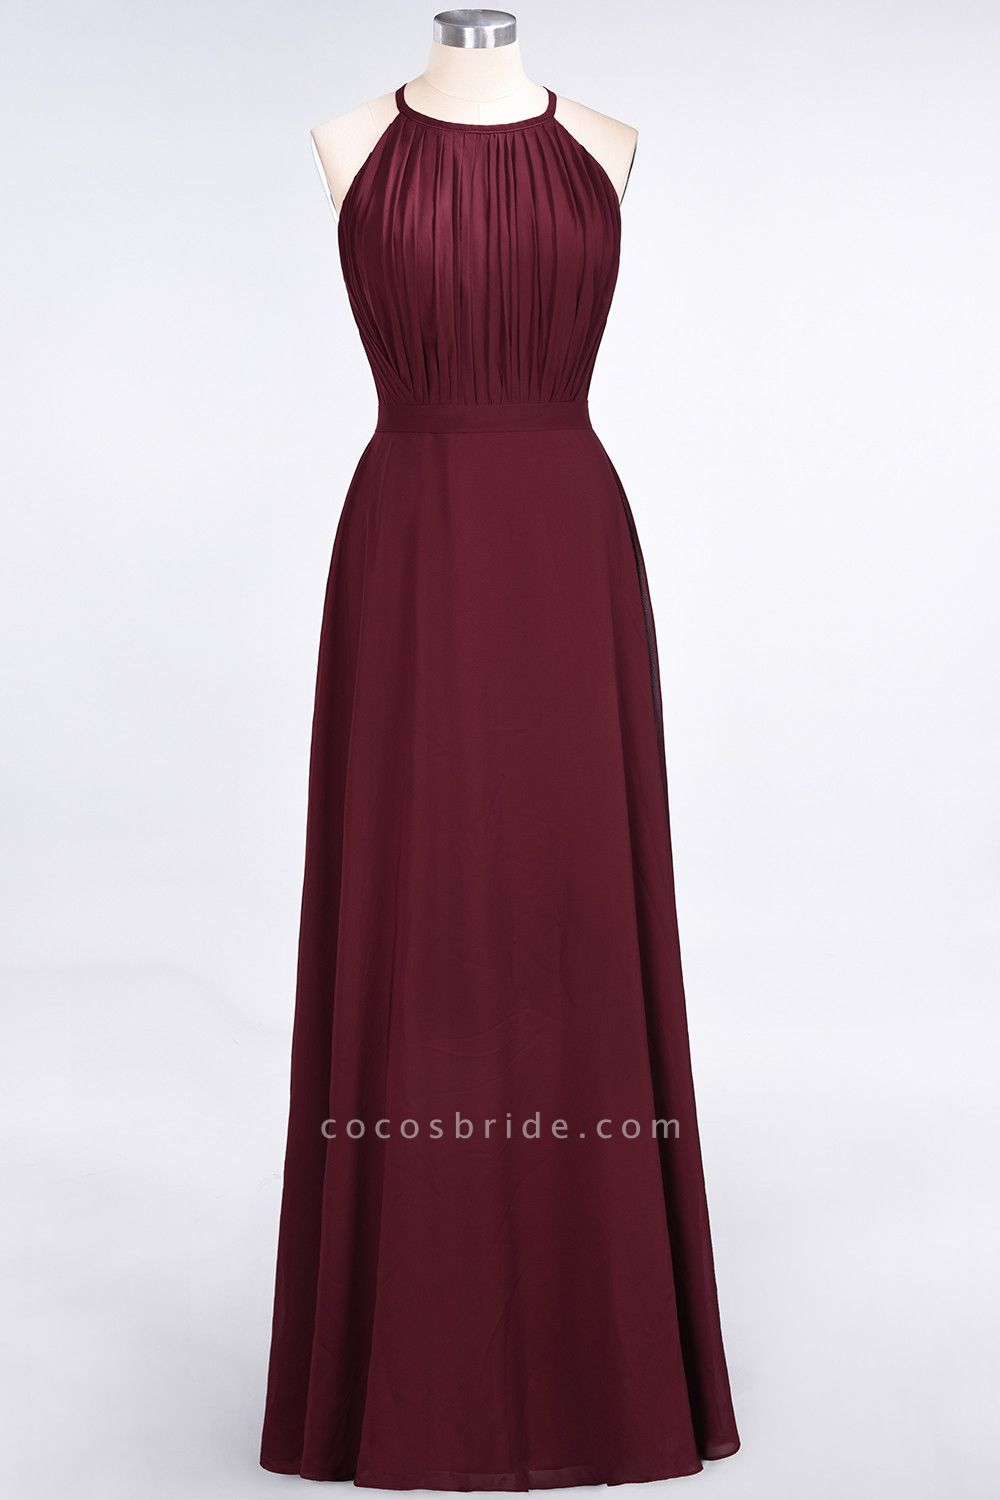 A-Line Chiffon Jewel Sleeveless Floor-Length Bridesmaid Dress with Ruffles